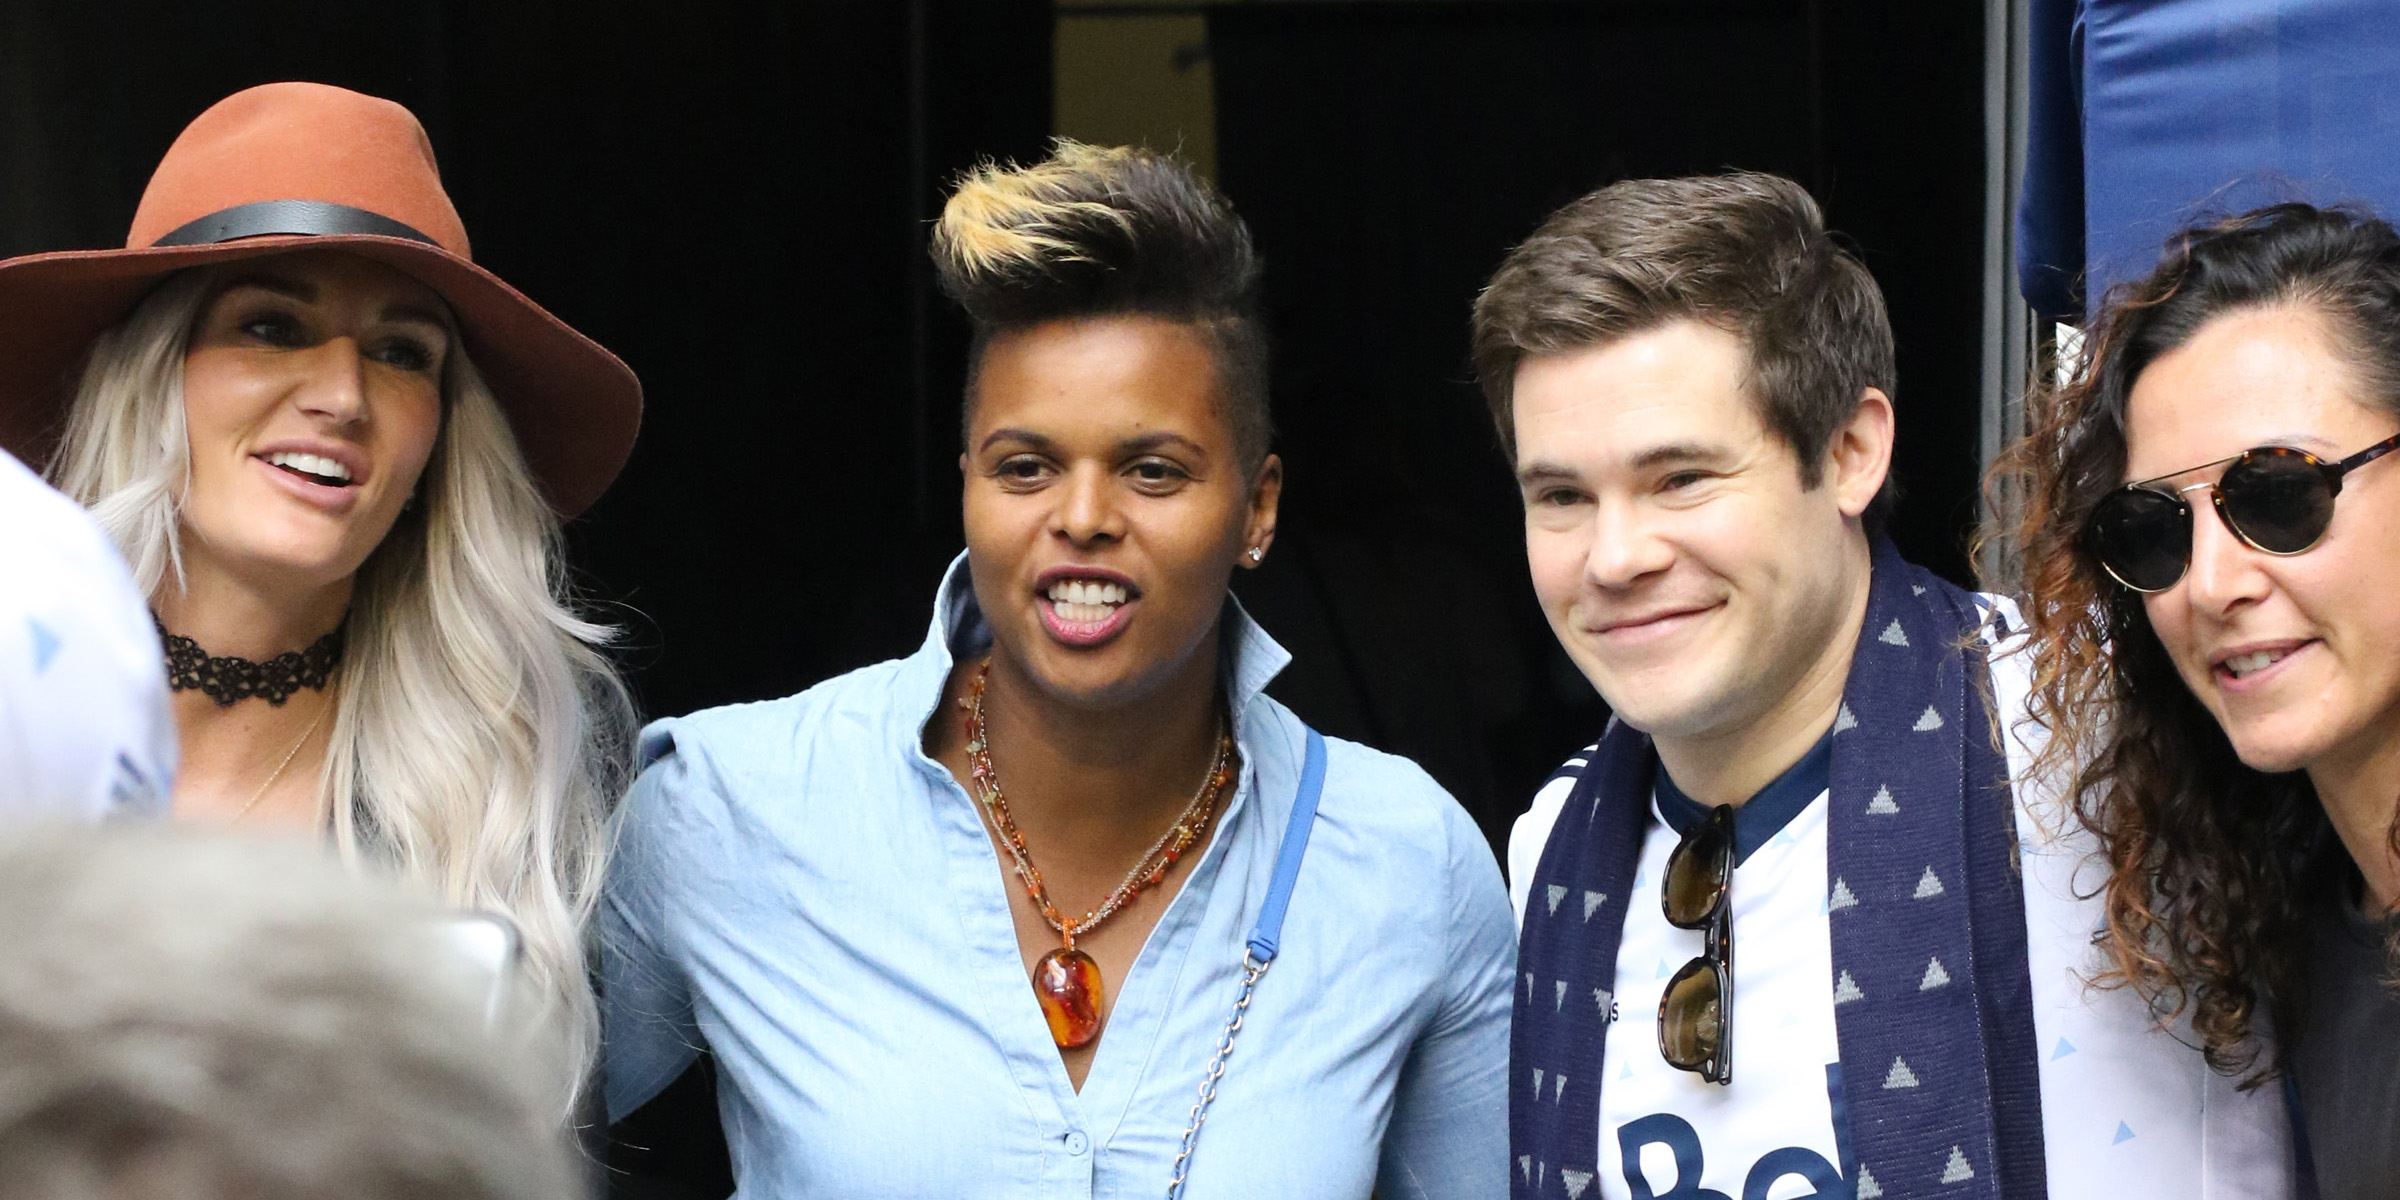 Spotted: Adam Devine and Blake Anderson enjoy Whitecaps game (PHOTOS)